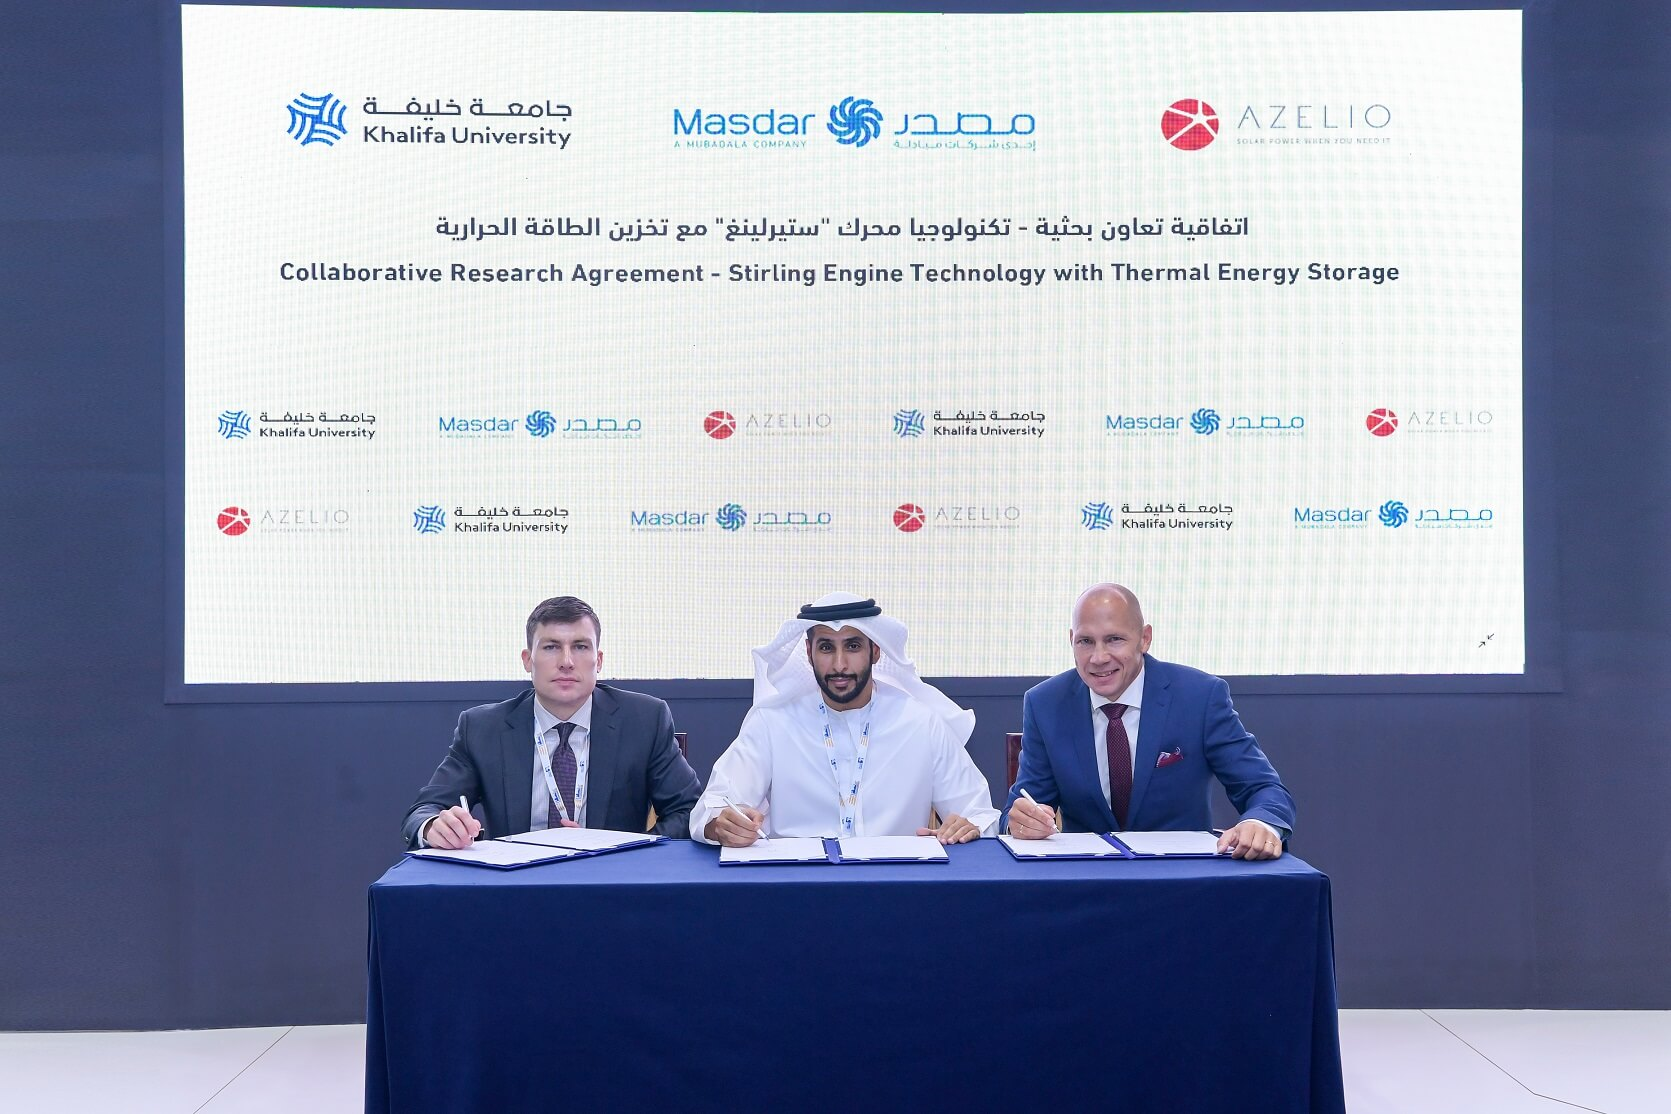 Azelio Partners with Khalifa University and Masdar to Install New Clean-Tech Pilot Project at Masdar City